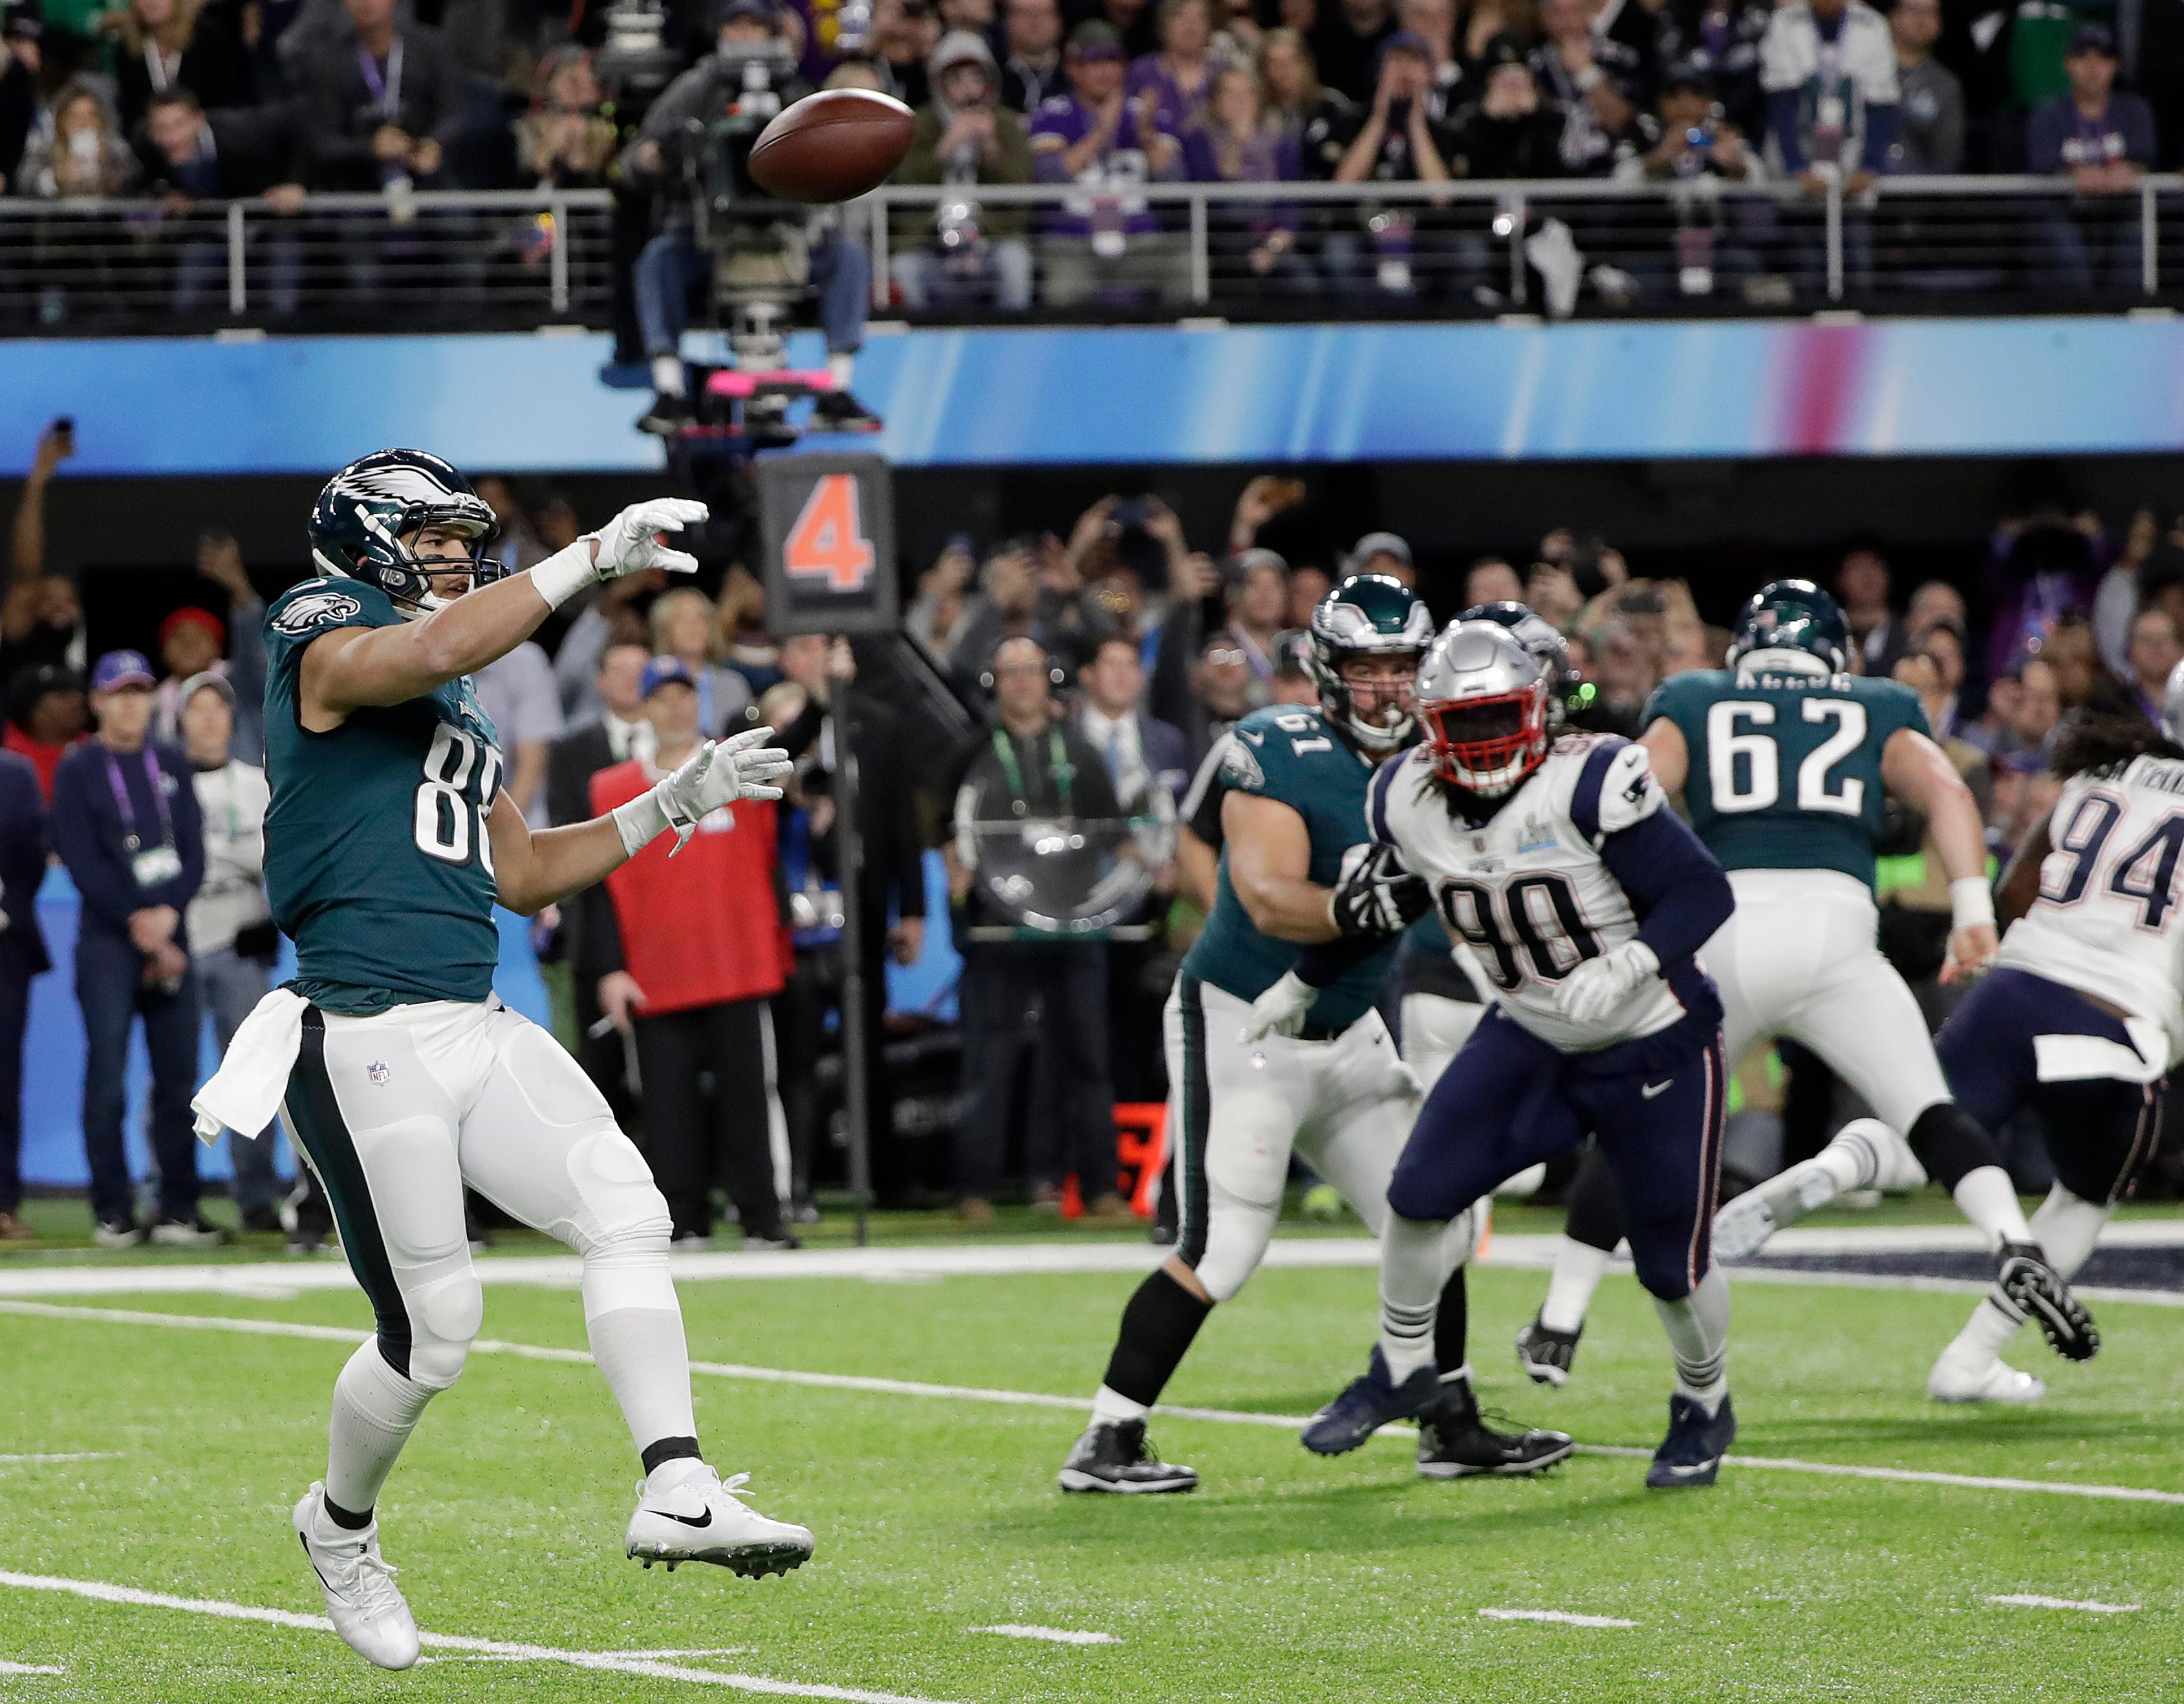 Philadelphia Eagles' Trey Burton, left, throws a touchdown pass to Nick Foles during the first half of the NFL Super Bowl 52 football game against the New England Patriots Sunday, Feb. 4, 2018, in Minneapolis. (AP Photo/Mark Humphrey)